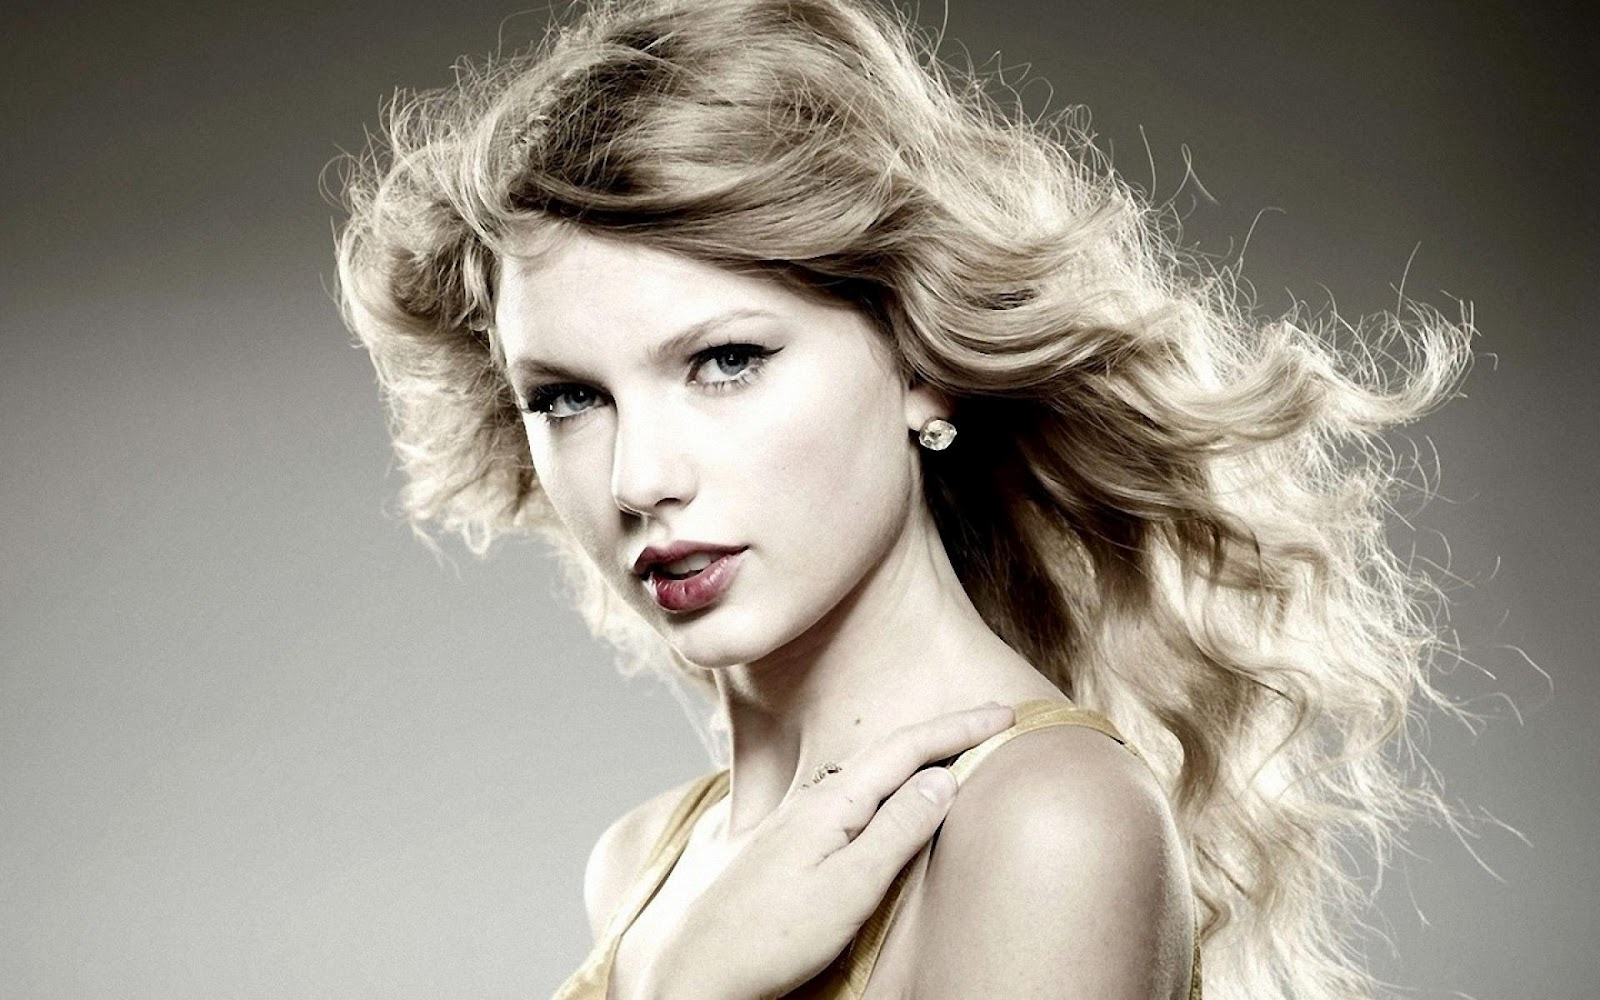 Taylor Swift hd Wallpapers 2012 All Hollywood Stars 1600x1000